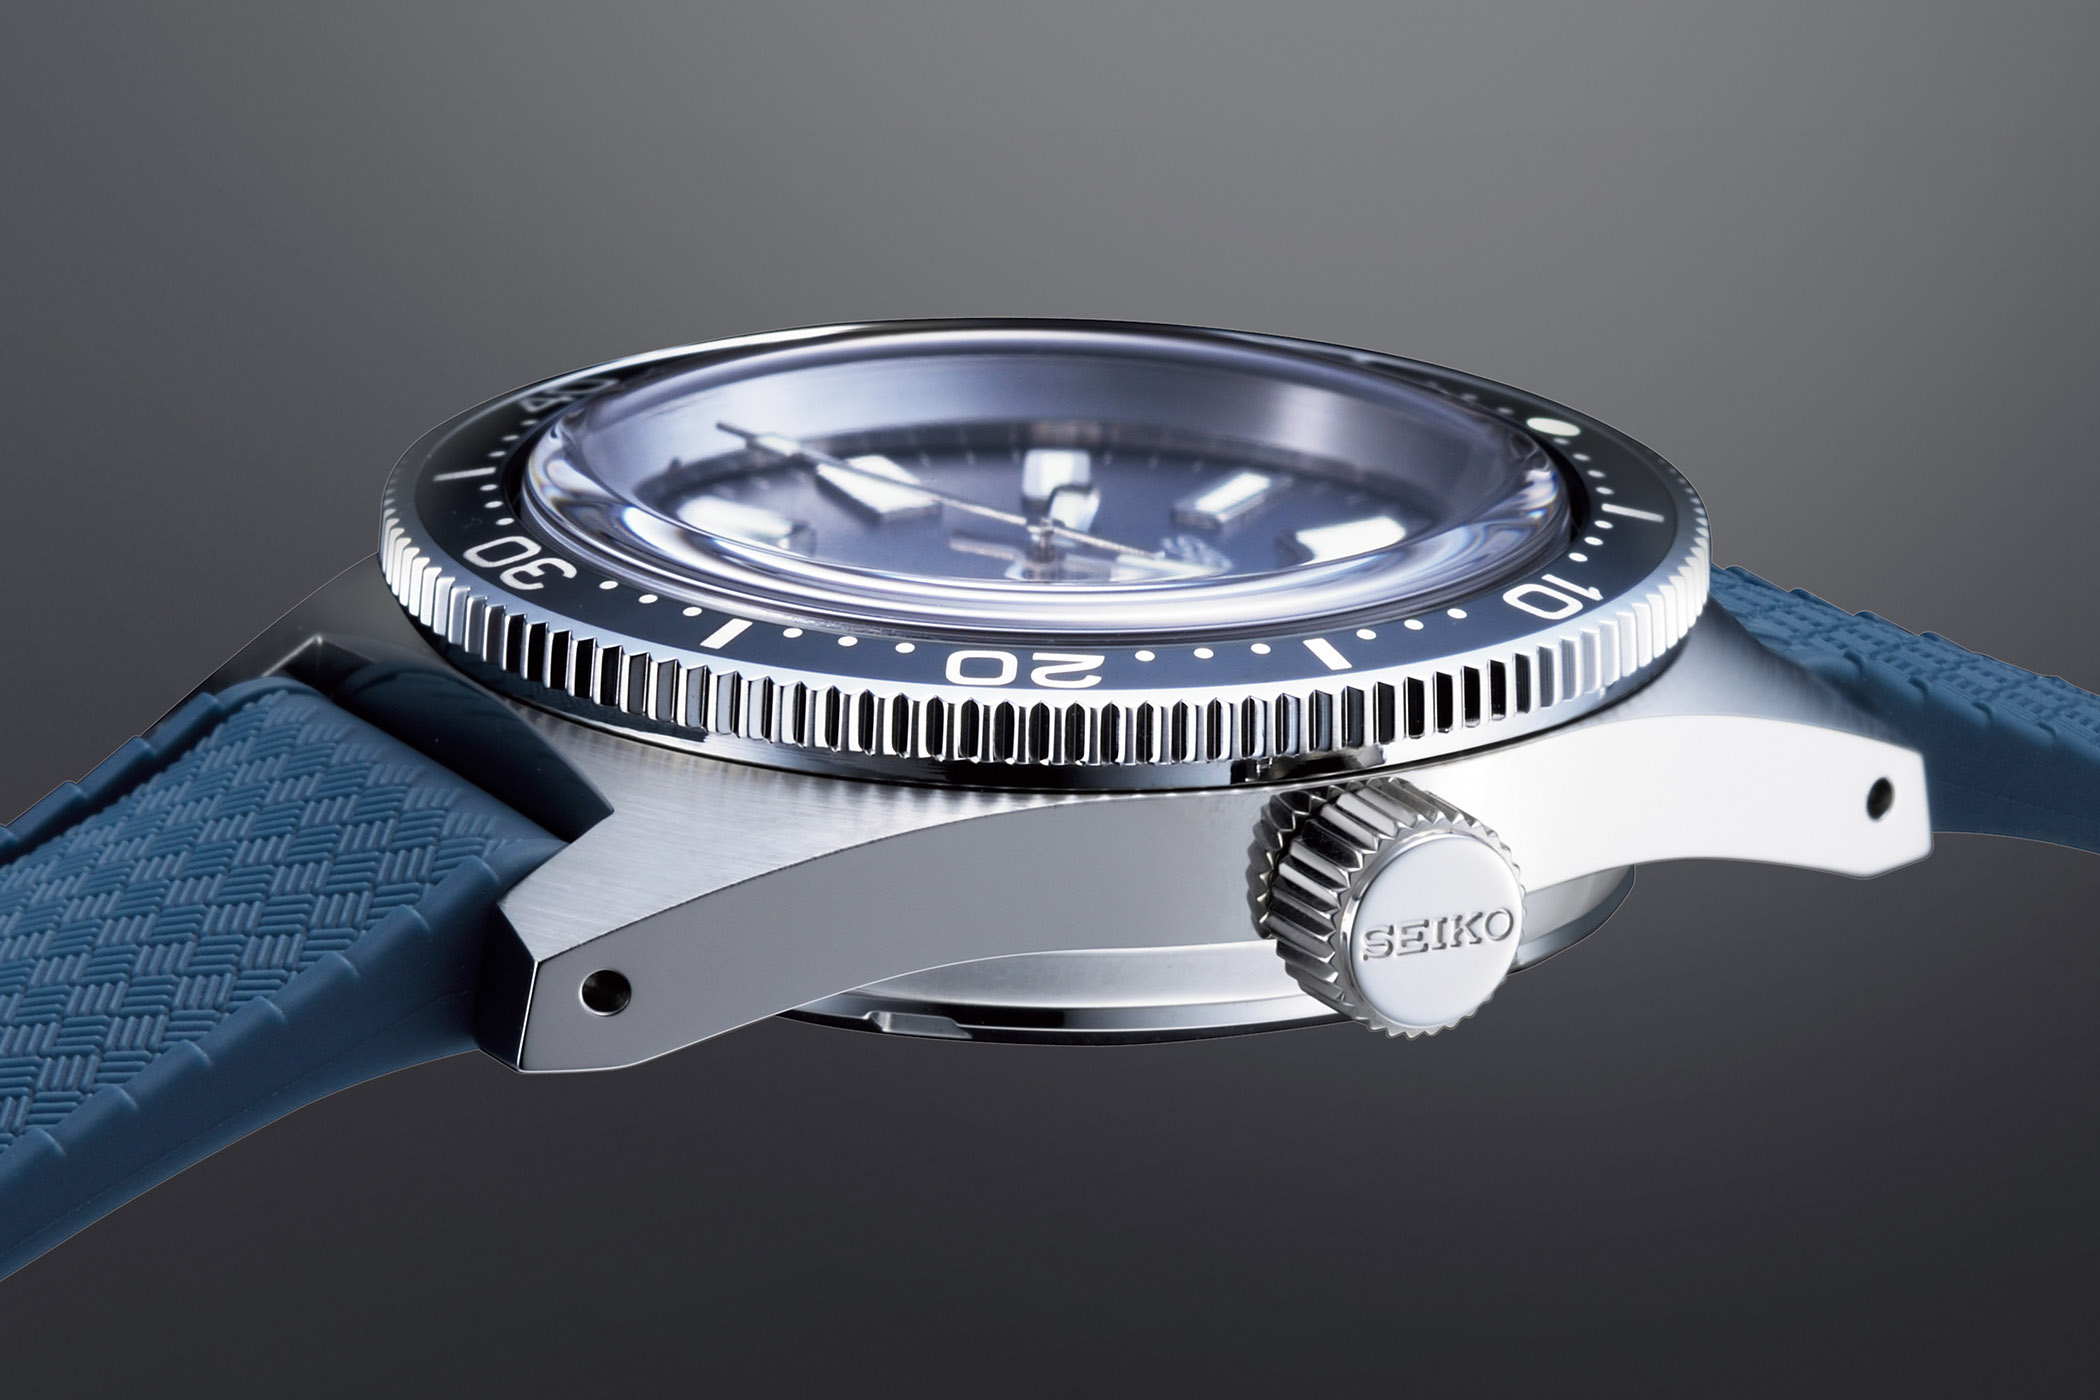 Seiko's new Diver's Watch 55th Anniversary L.E.'s Seiko-Prospex-Diver-55th-Anniversary-Re-Edition-1965-Diver-SLA037-1